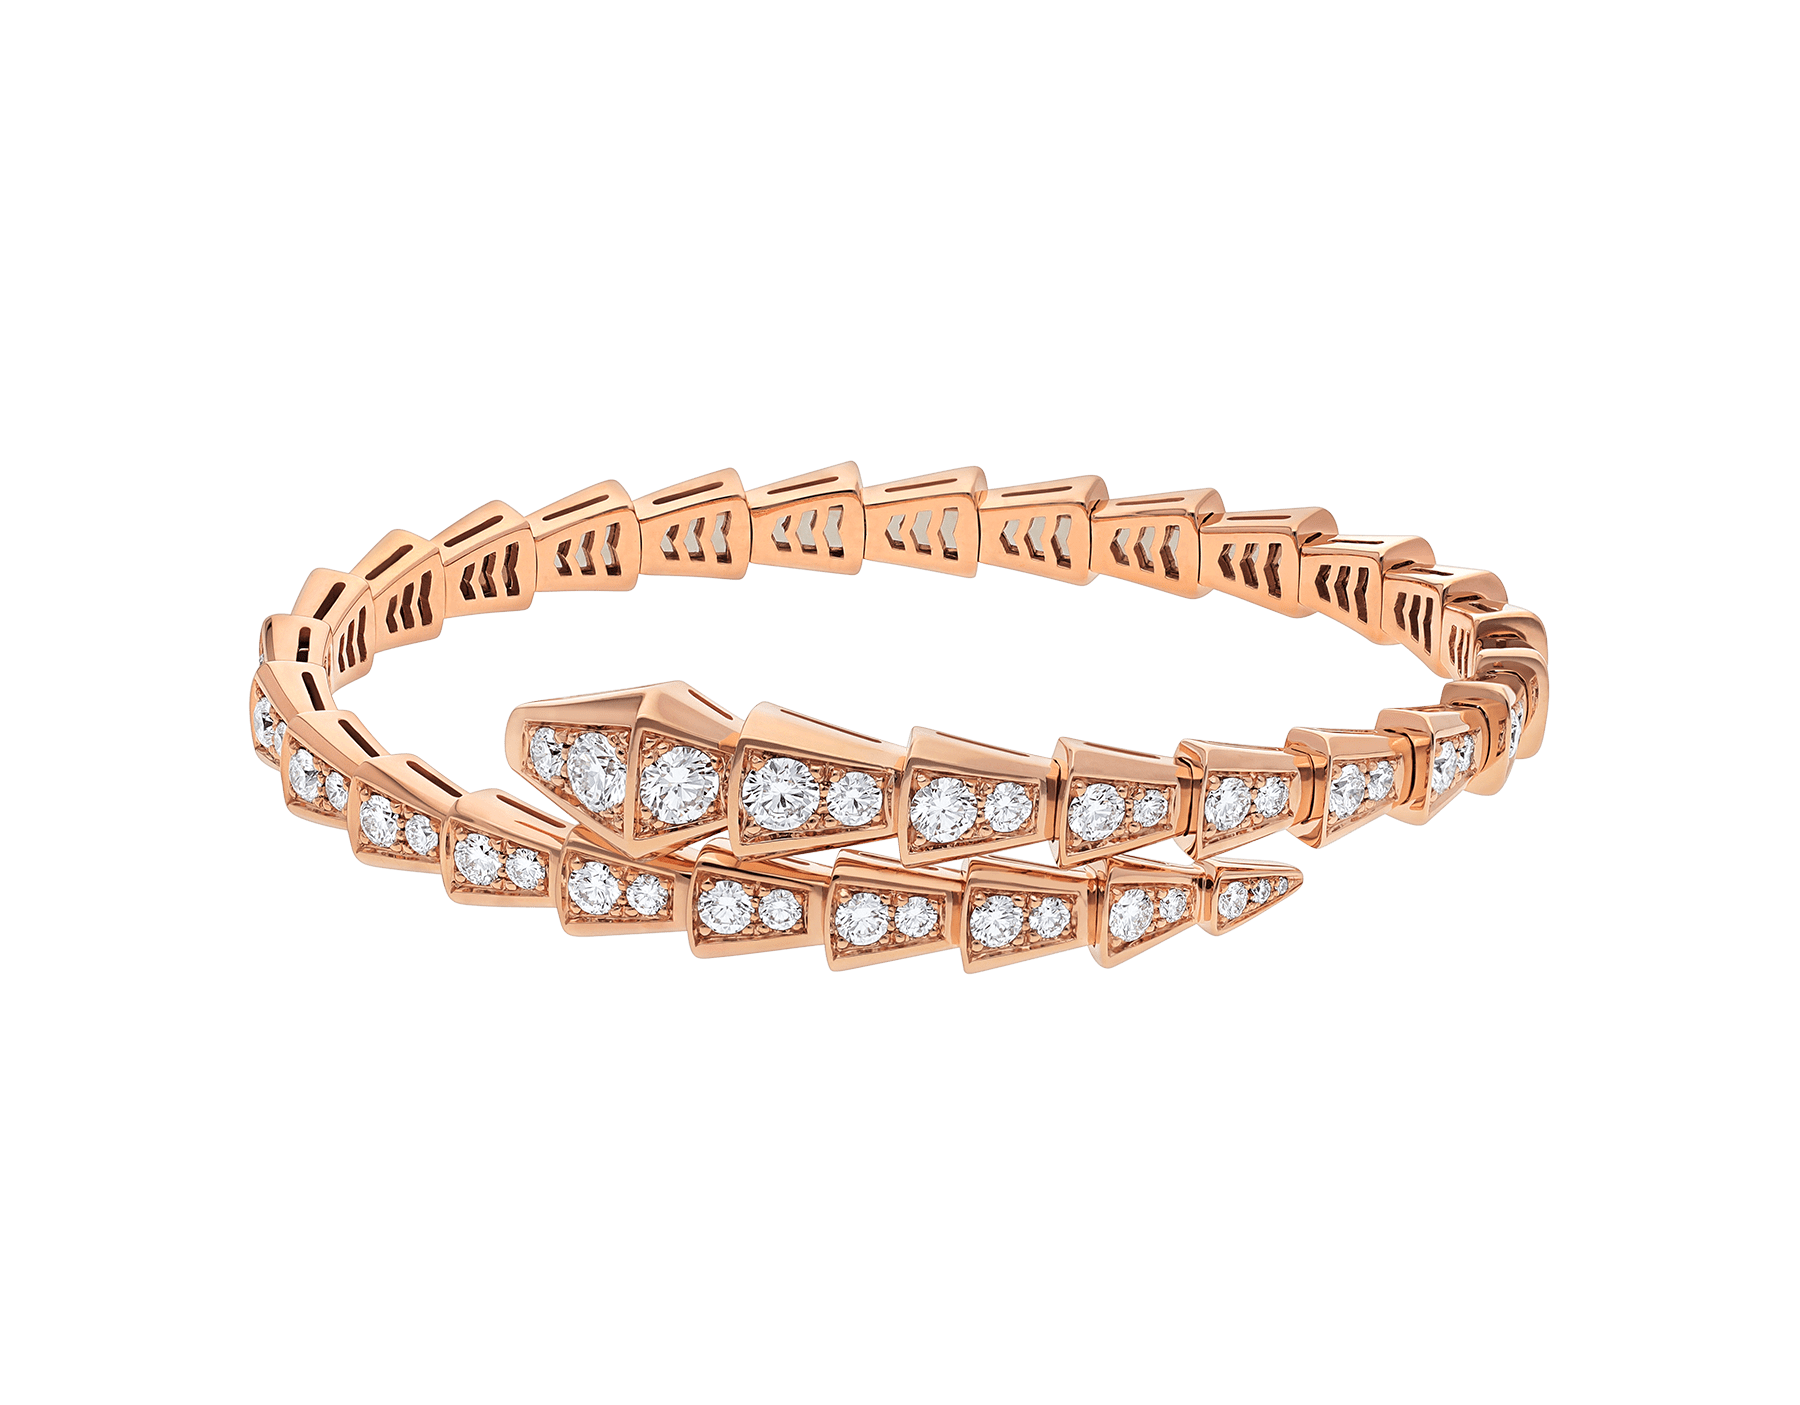 Serpenti Viper one-coil thin bracelet in 18 kt rose gold and full pavé diamonds. BR858084 image 2